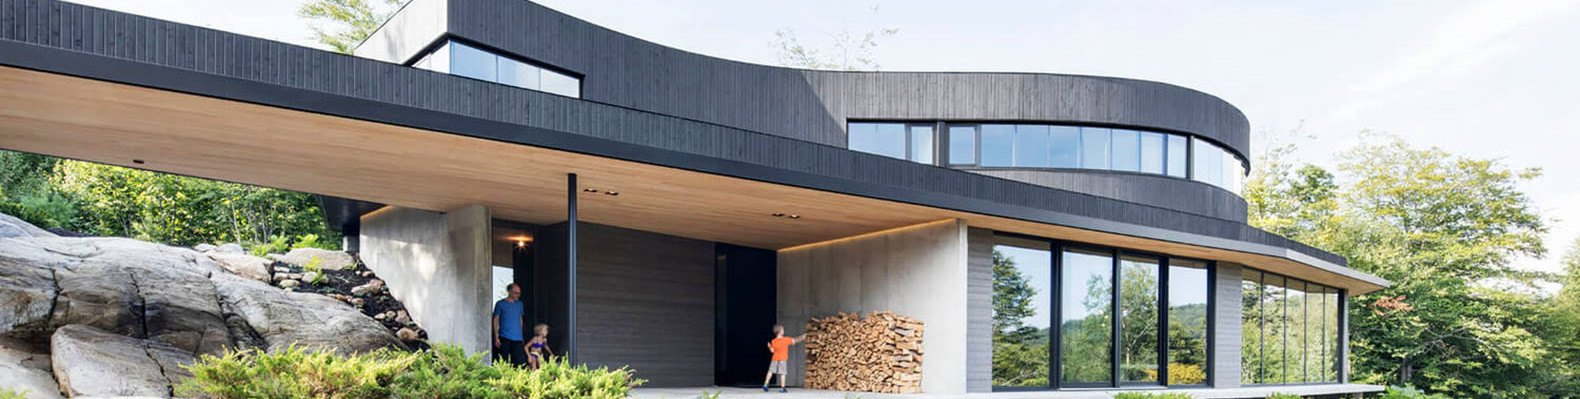 Beautiful Ontario Home Built From Reclaimed Materials Is 100% Self  Sufficient   Inhabitat   Green Design, Innovation, Architecture, Green  Building